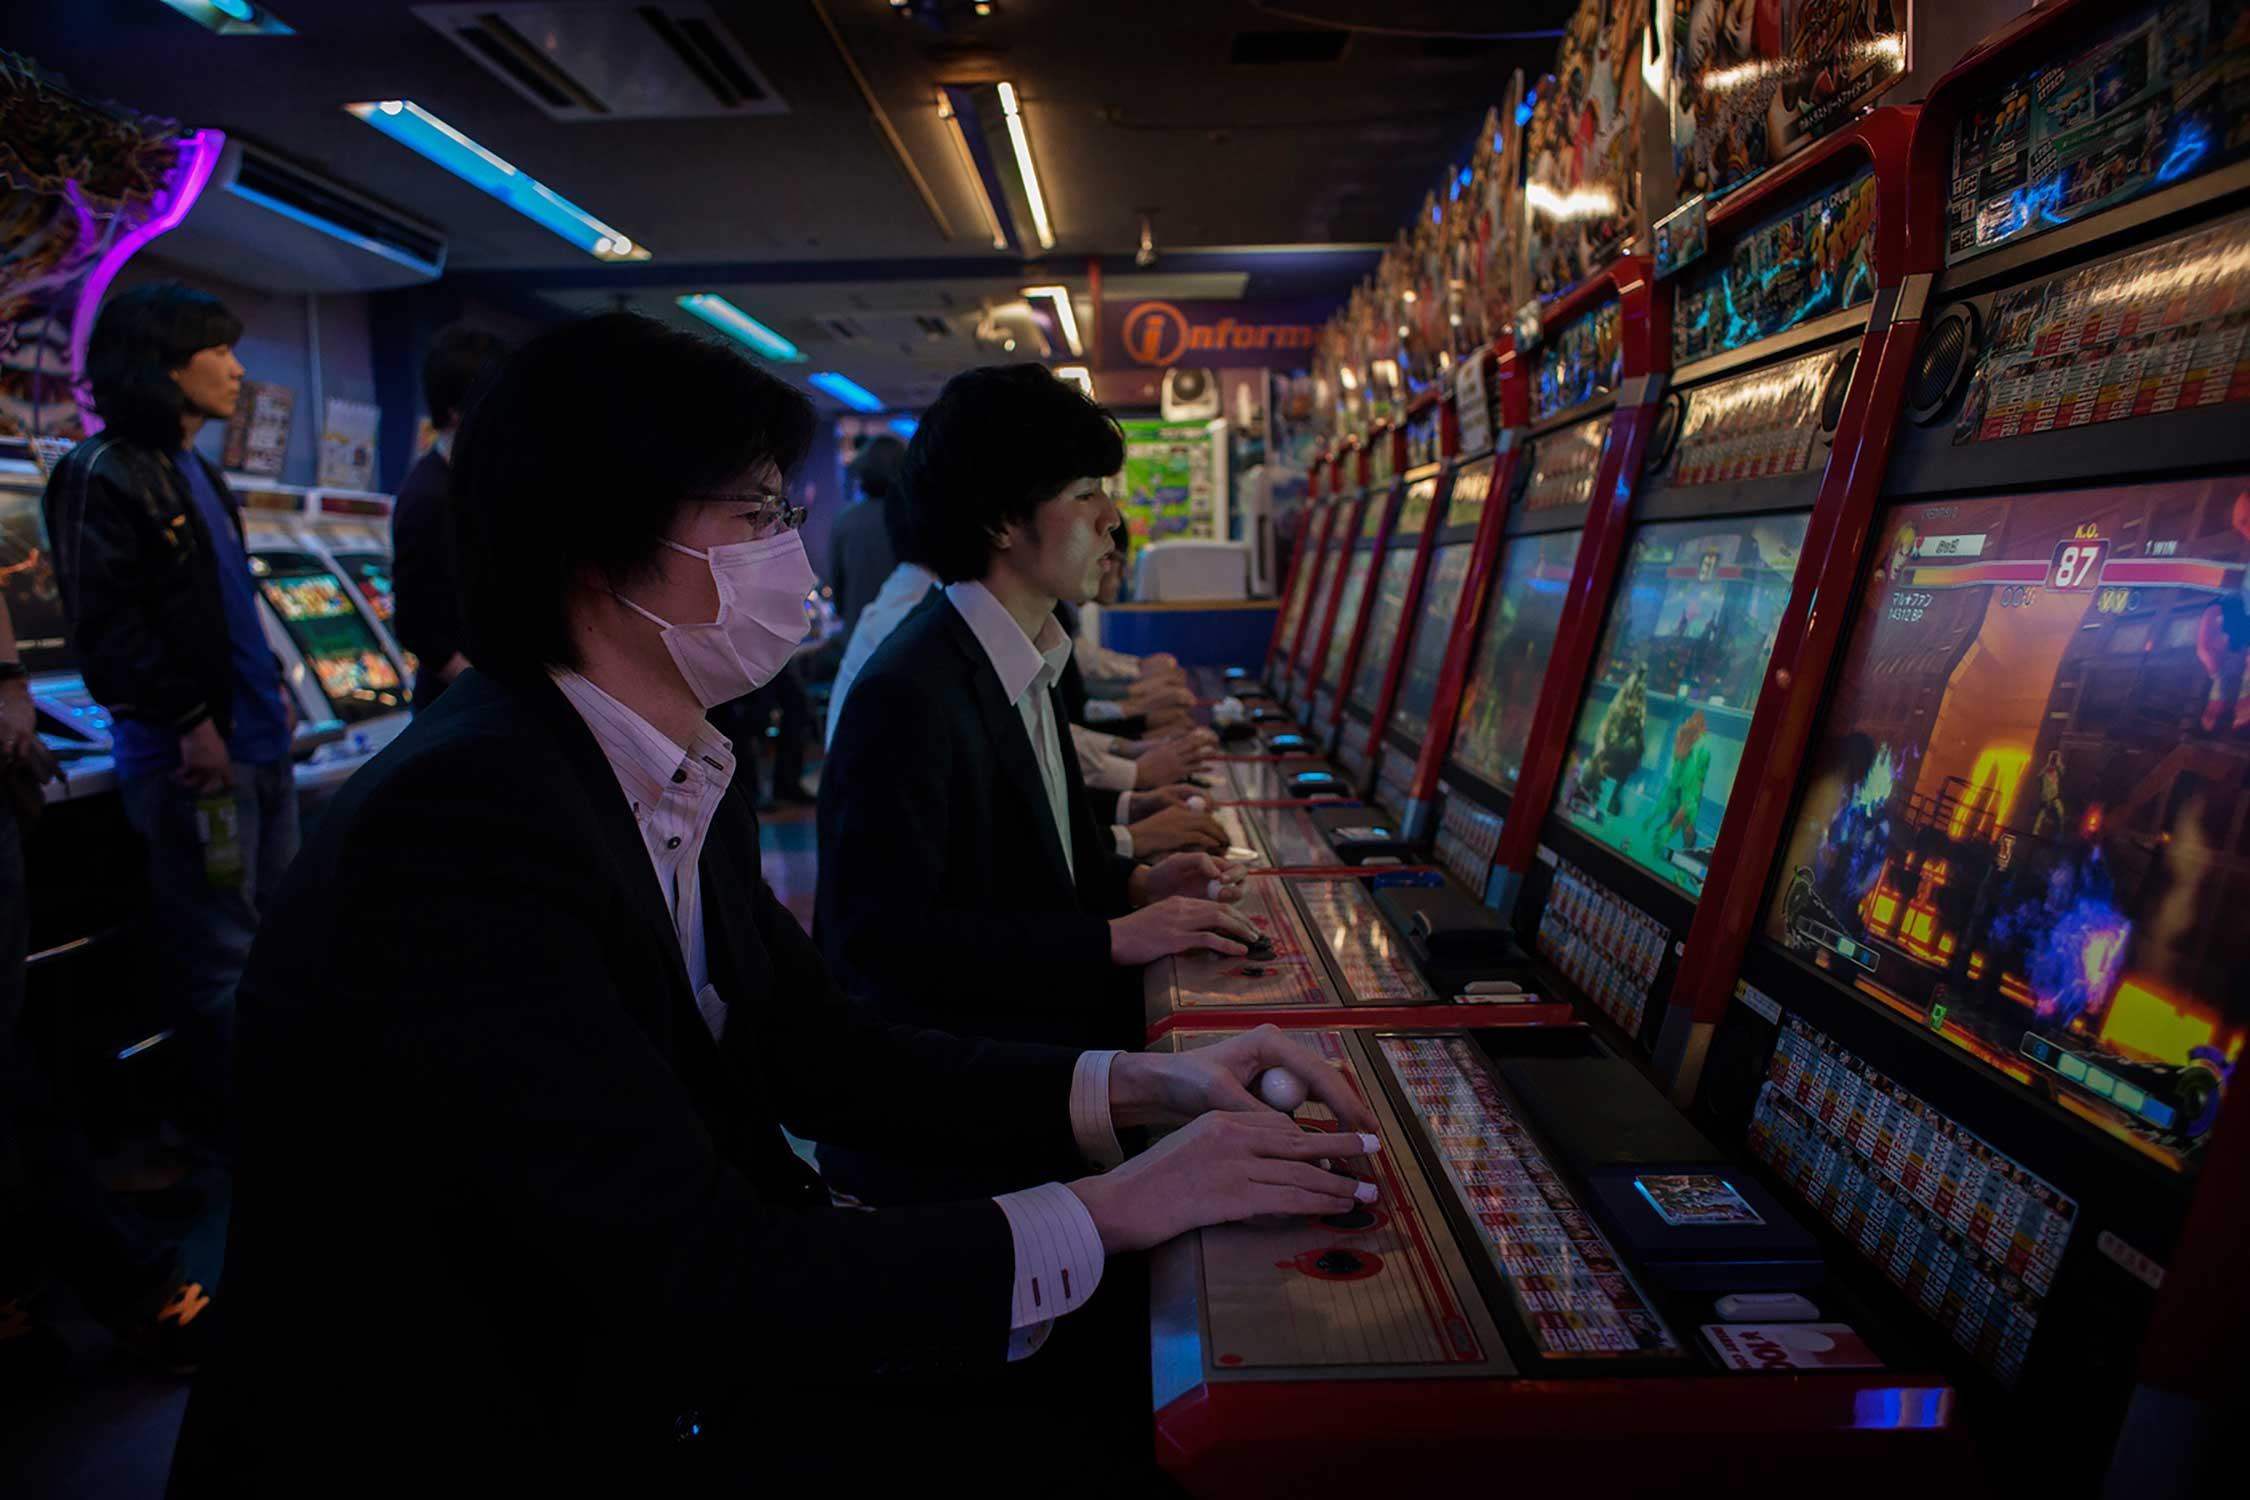 Men in suits play games in a Patchinko hall after work on a Friday night in Akihabara district, famous for its many playing halls and vivid Otome culture in Tokyo.